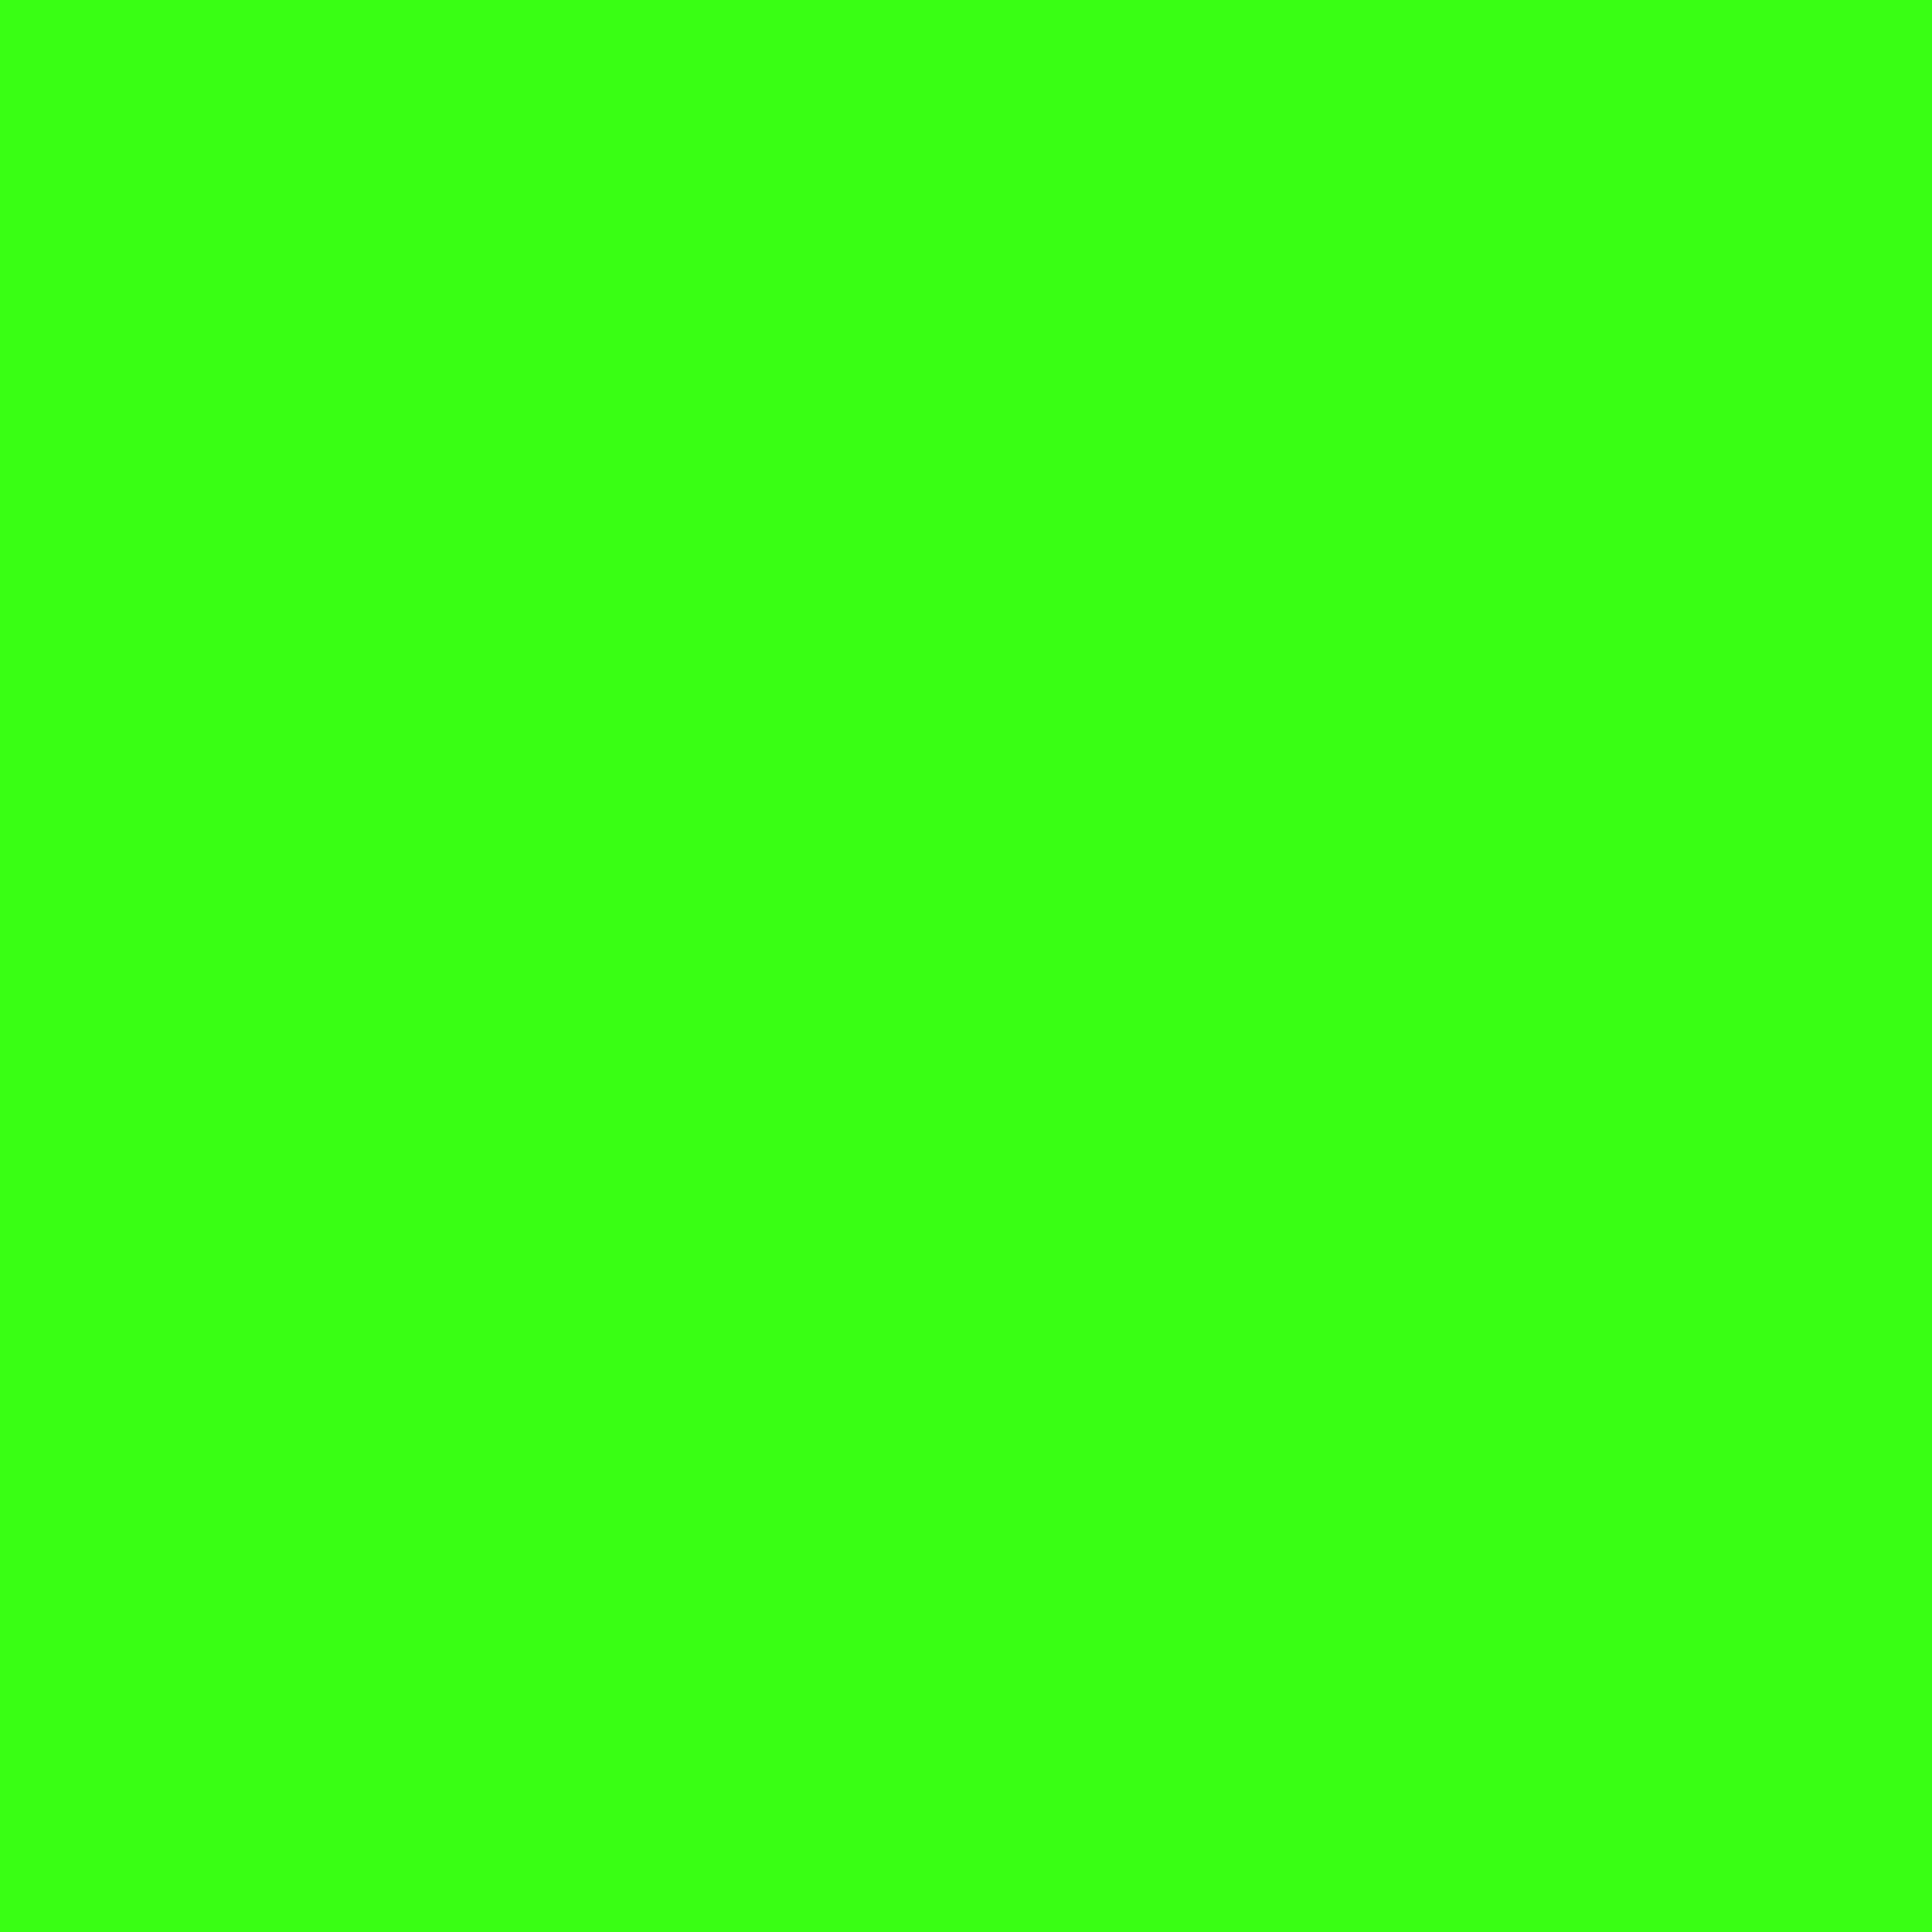 3600x3600 Neon Green Solid Color Background